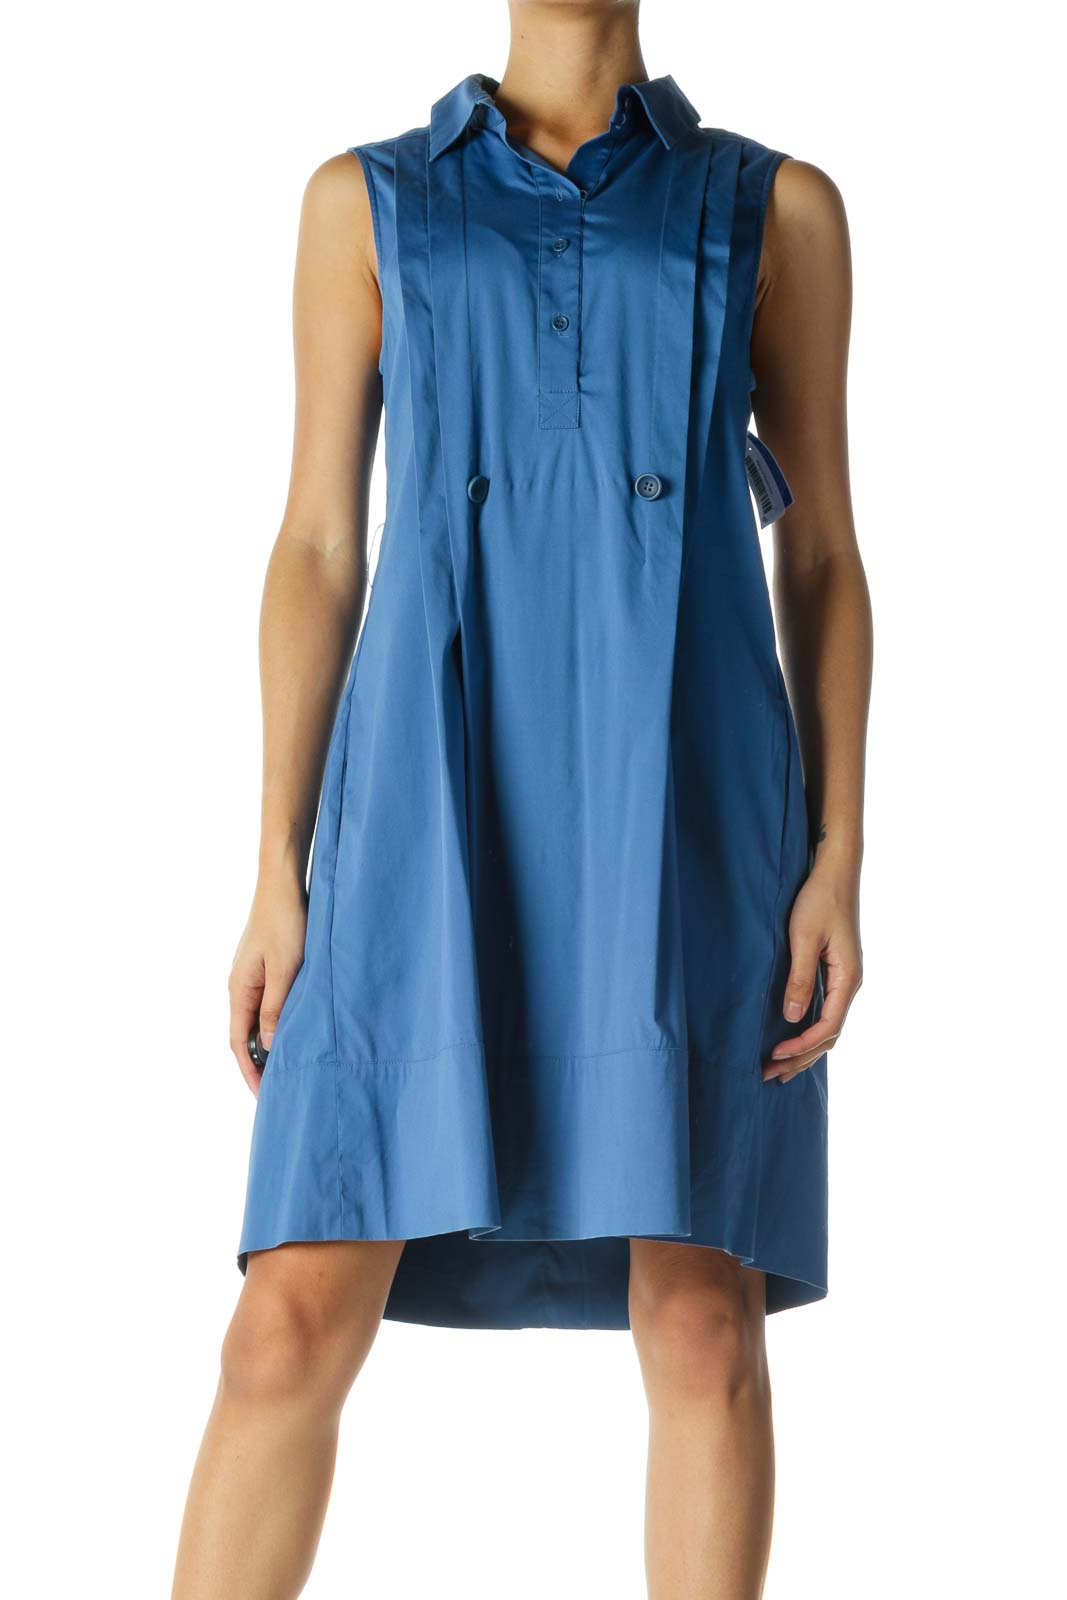 Blue Collared Work Dress